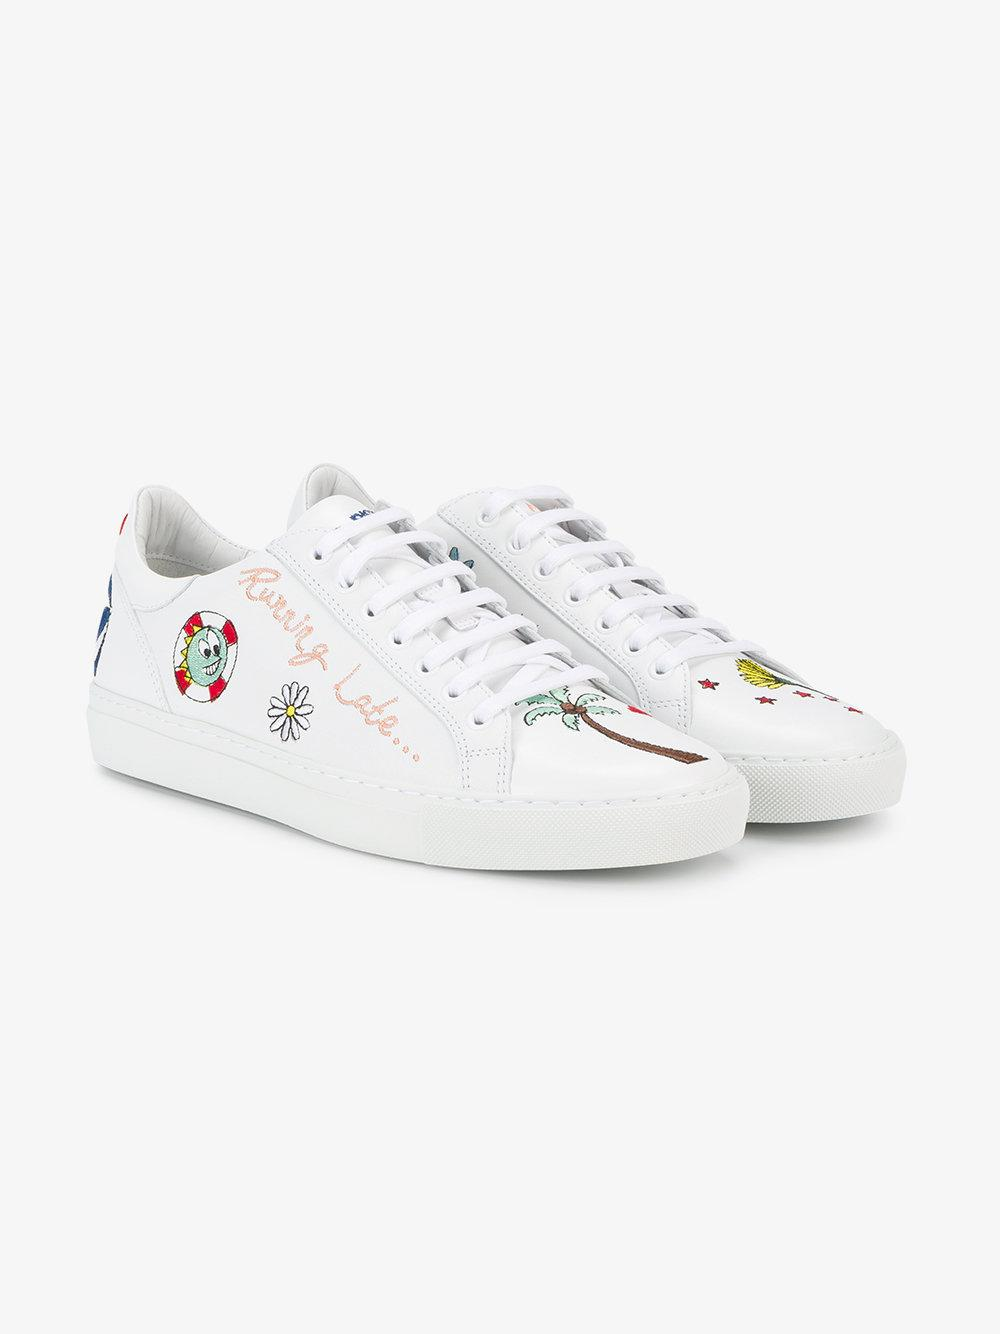 Mira Mikati Cotton Running Late Embroidered Sneakers in White